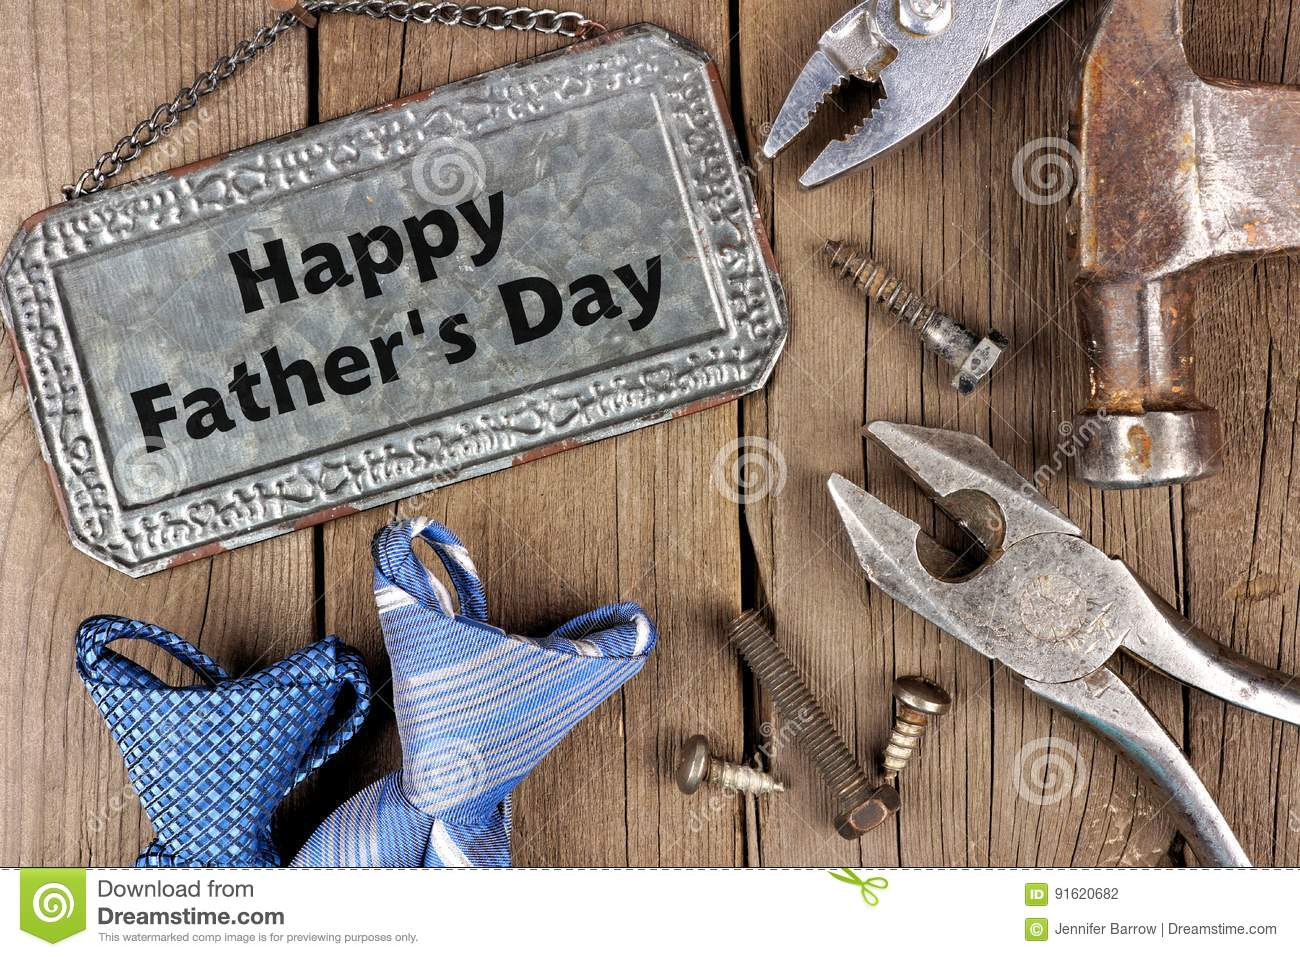 Happy Fathers Day metal sign with tools and ties on wood